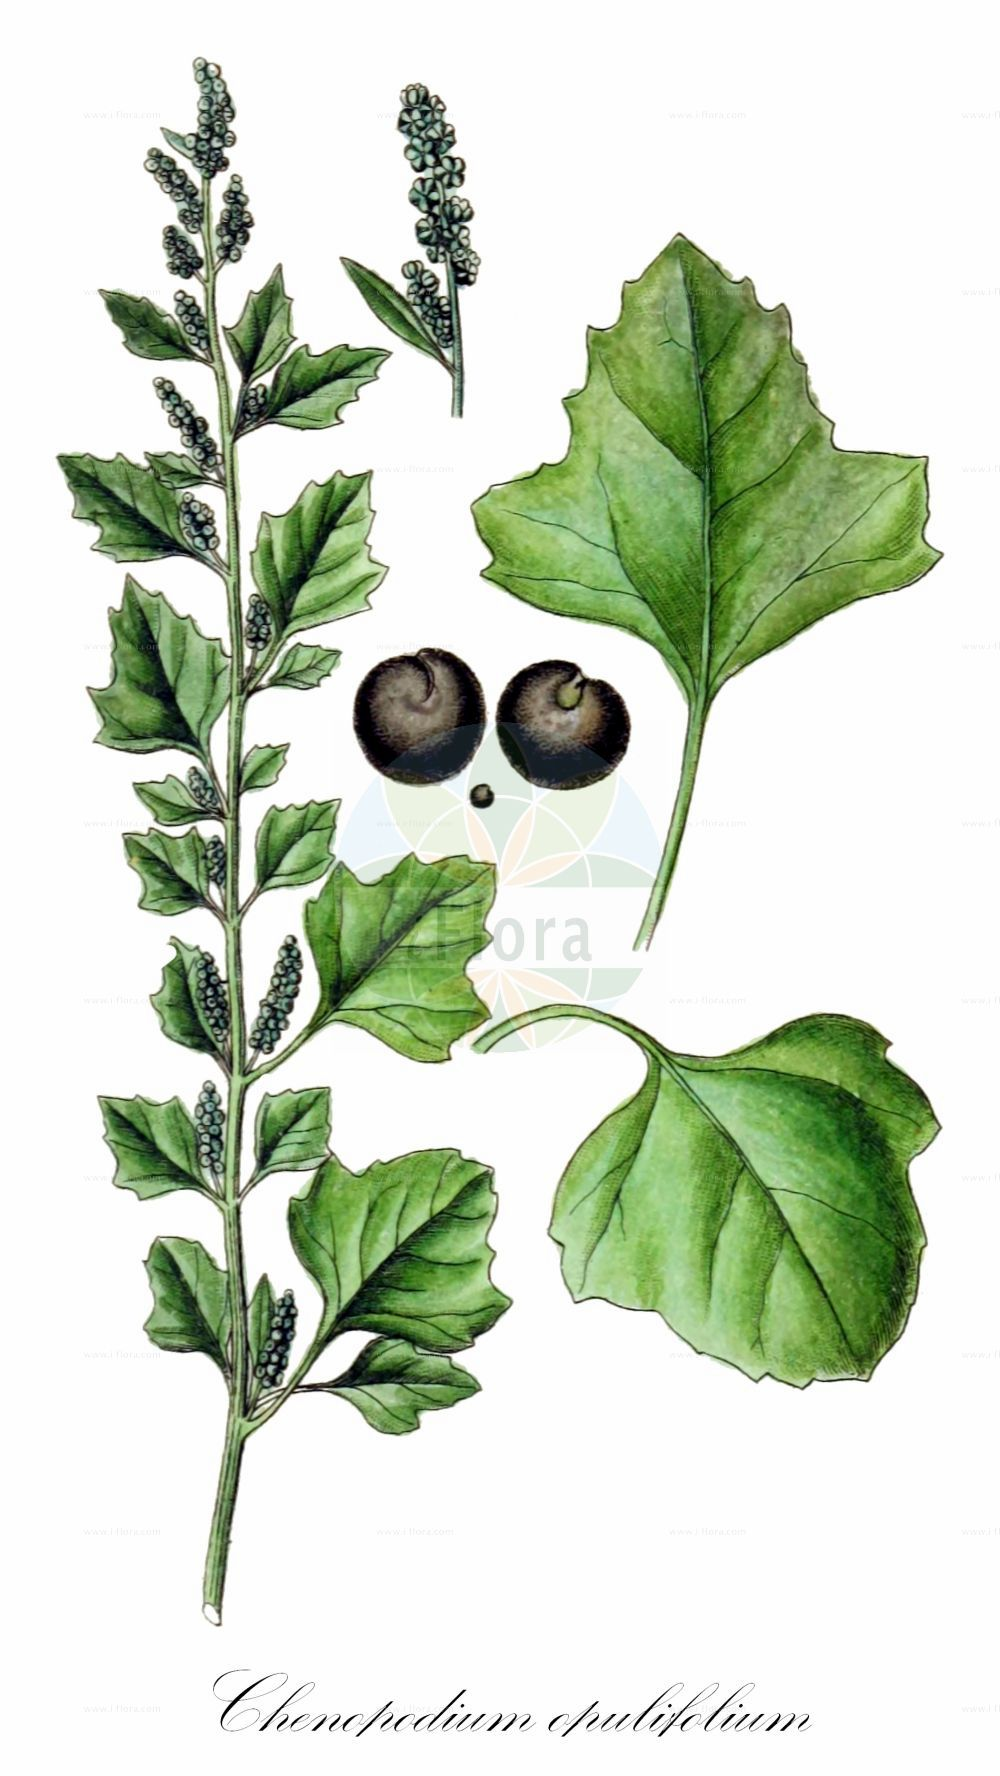 Historische Abbildung von Chenopodium opulifolium (Schneeballblaettriger Gaensefuss - Grey Goosefoot). Das Bild zeigt Blatt, Bluete, Frucht und Same. ---- Historical Drawing of Chenopodium opulifolium (Schneeballblaettriger Gaensefuss - Grey Goosefoot).The image is showing leaf, flower, fruit and seed.(Chenopodium opulifolium,Schneeballblaettriger Gaensefuss,Grey Goosefoot,Seaport Goosefoot,Round-leaved Goosefoot,Chenopodium,Gaensefuss,Goosefoot,Amaranthaceae,Fuchsschwanzgewaechse,Pigweed family,Blatt,Bluete,Frucht,Same,leaf,flower,fruit,seed,Sturm (1796f))